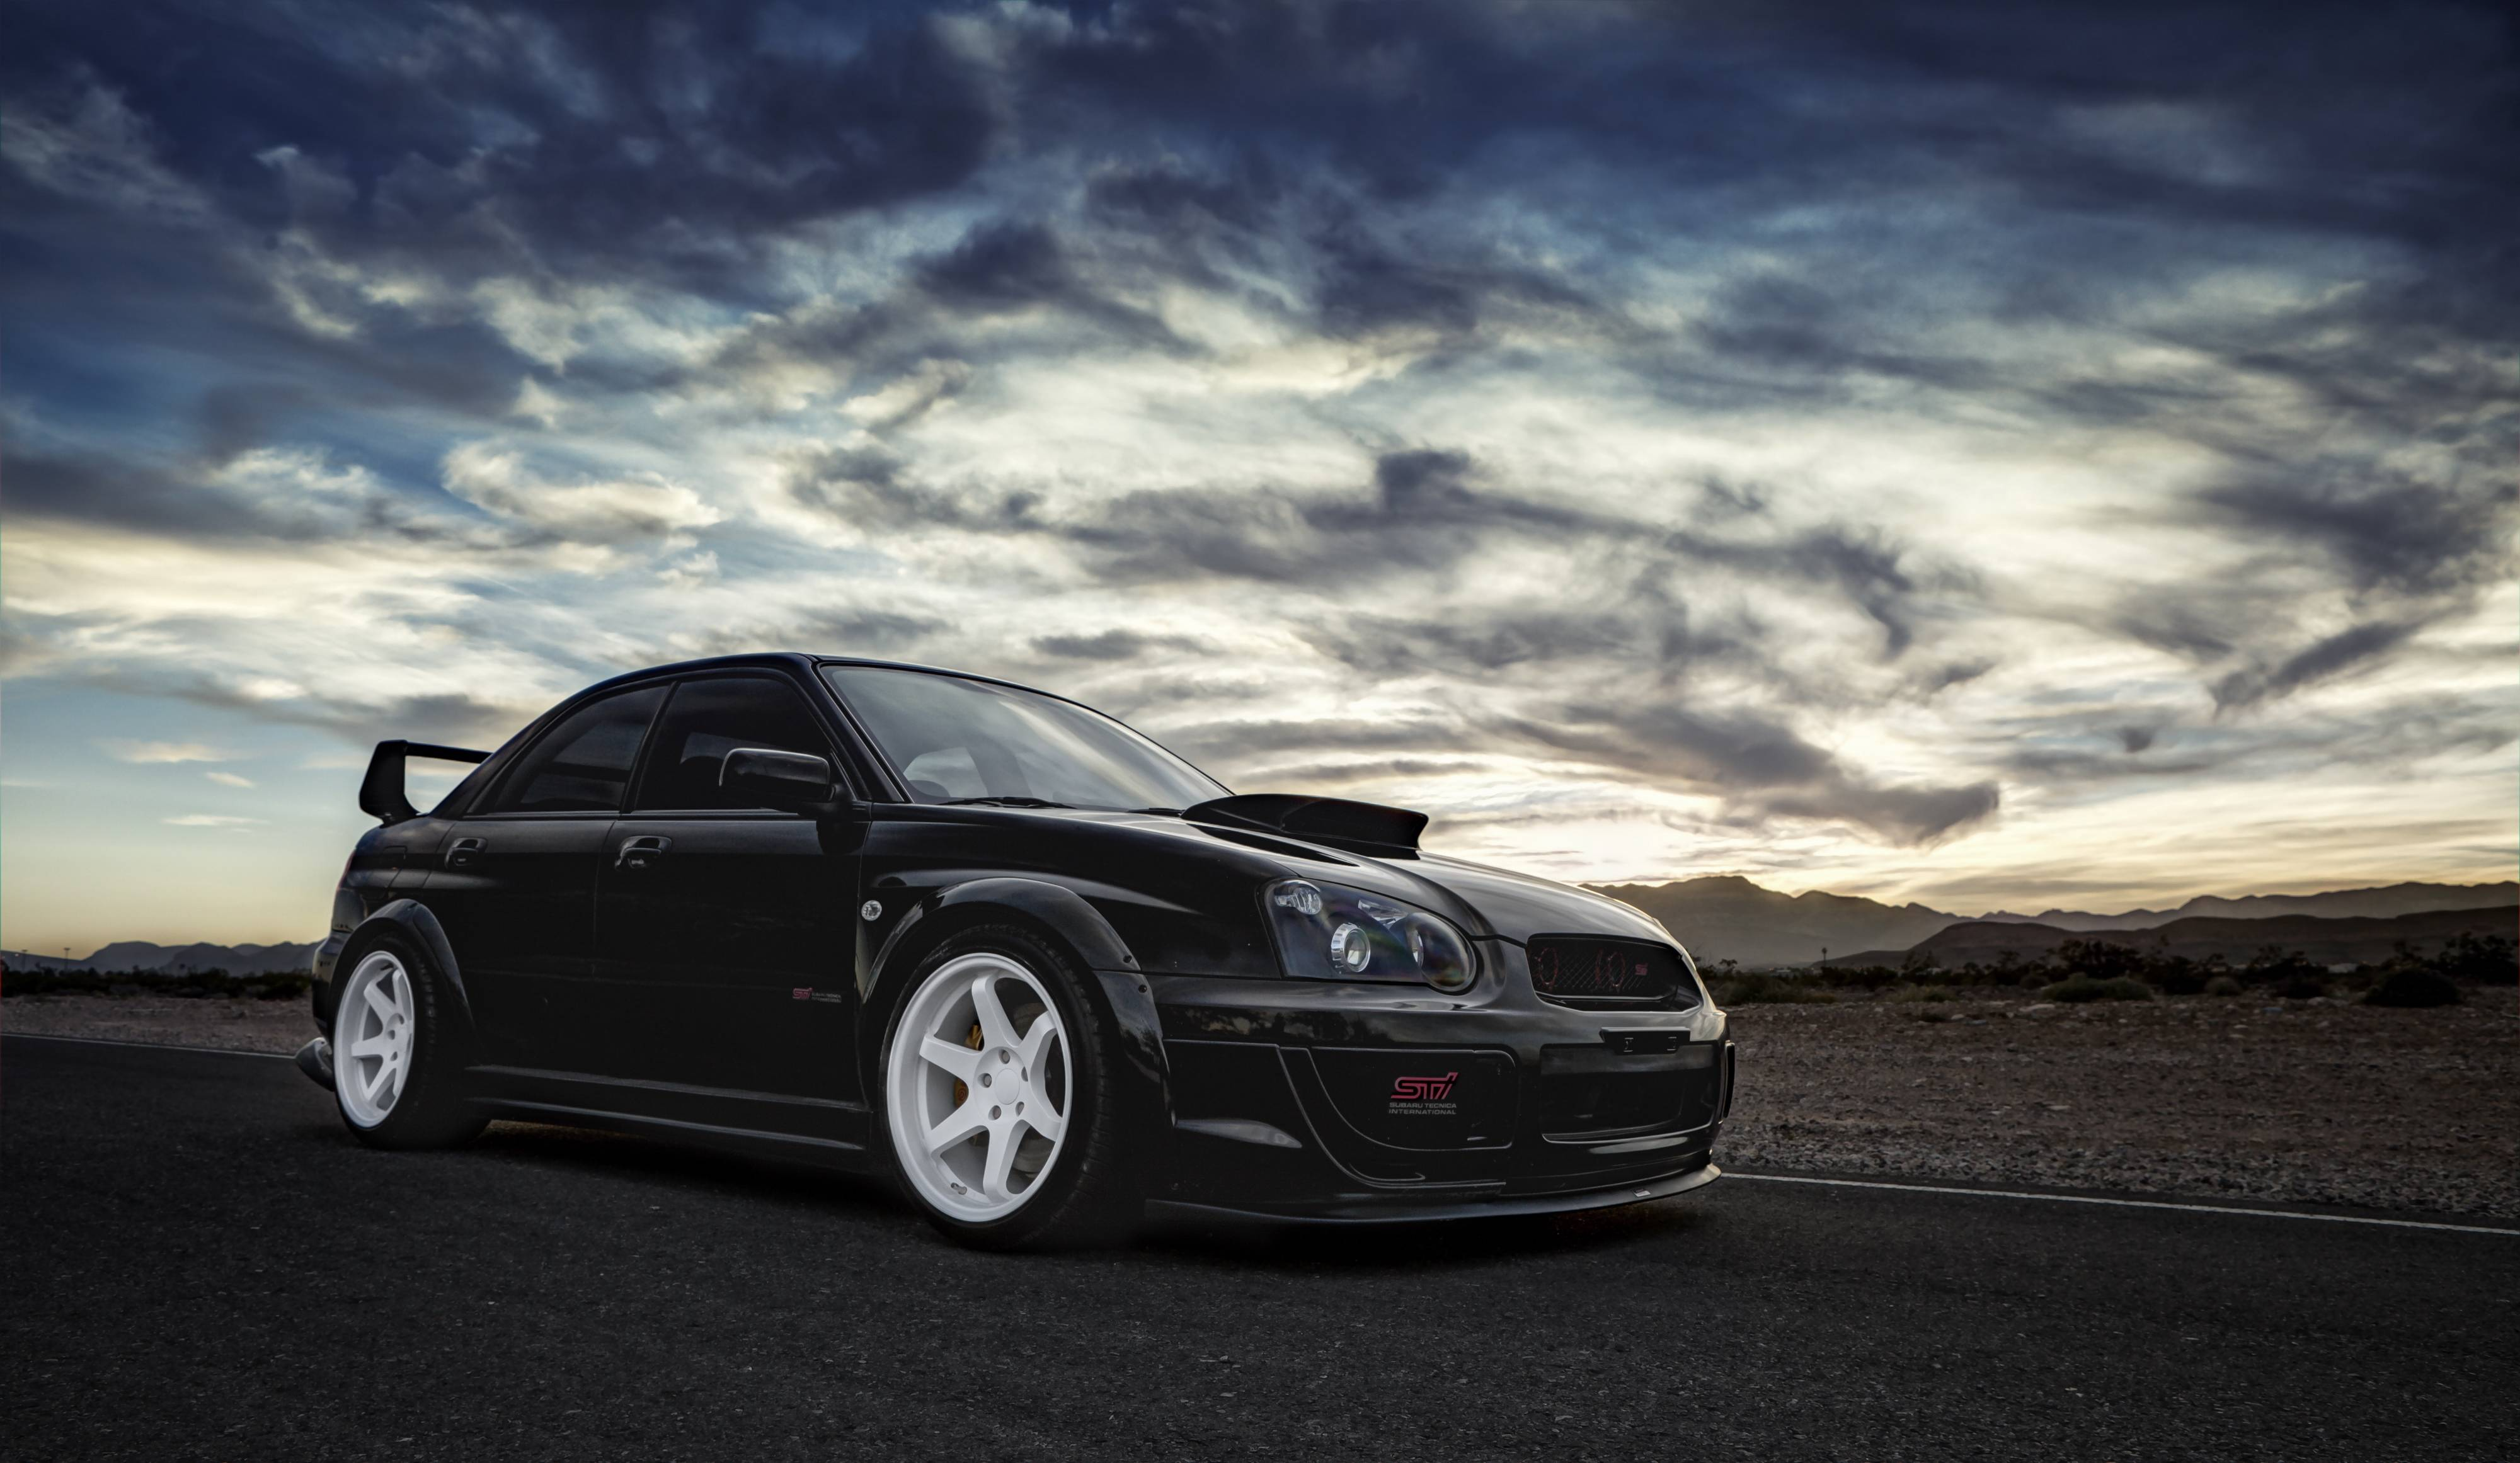 Wrx Wallpapers Top Free Wrx Backgrounds Wallpaperaccess